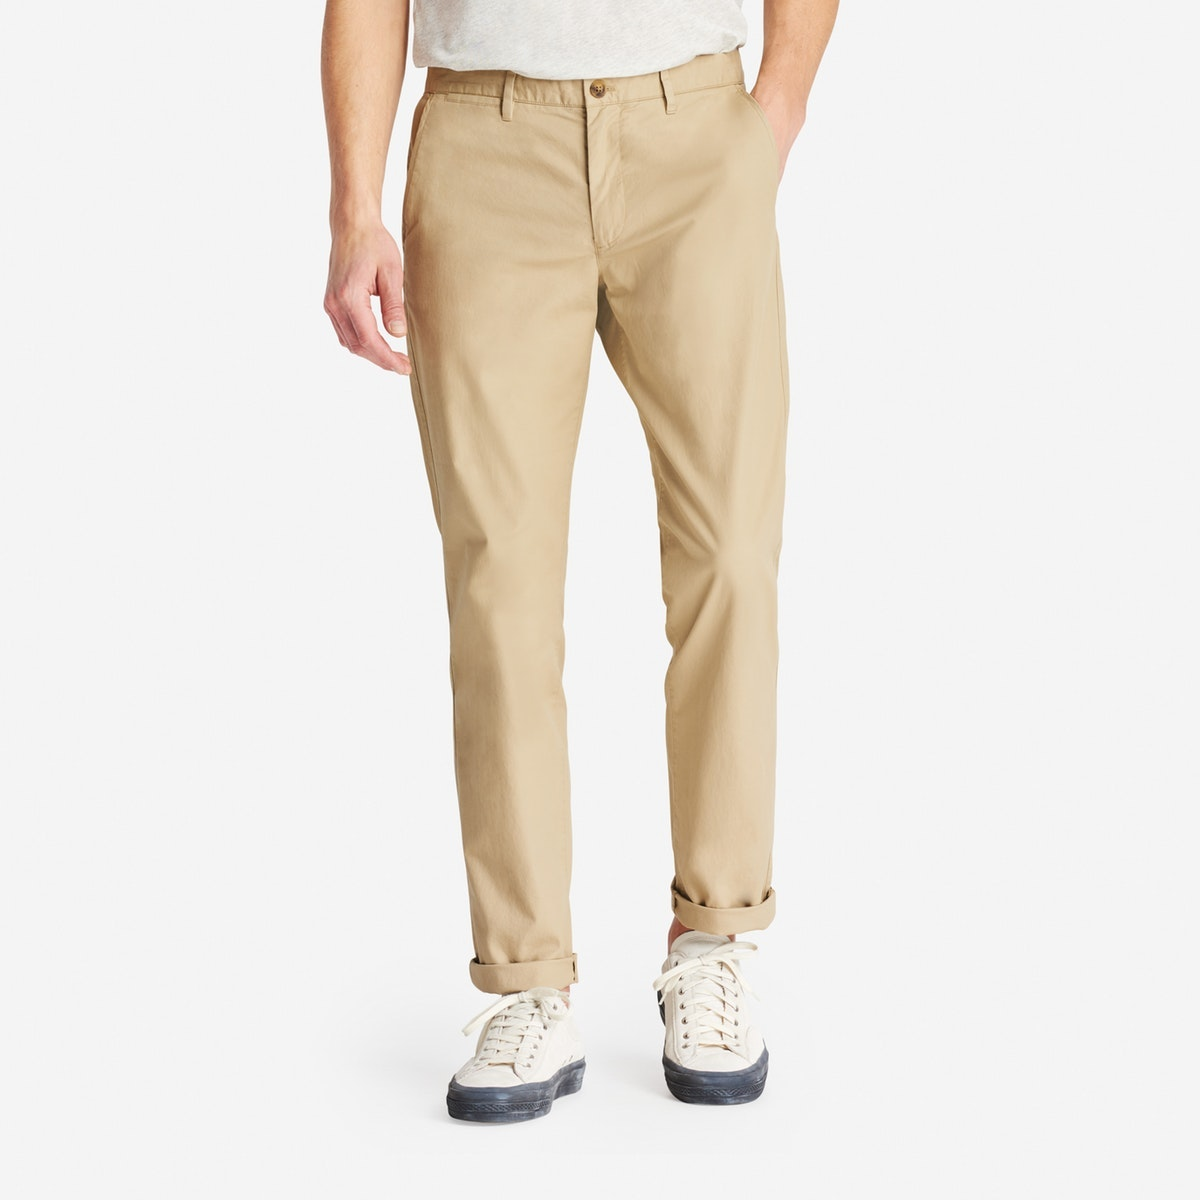 Summer Weight Chinos